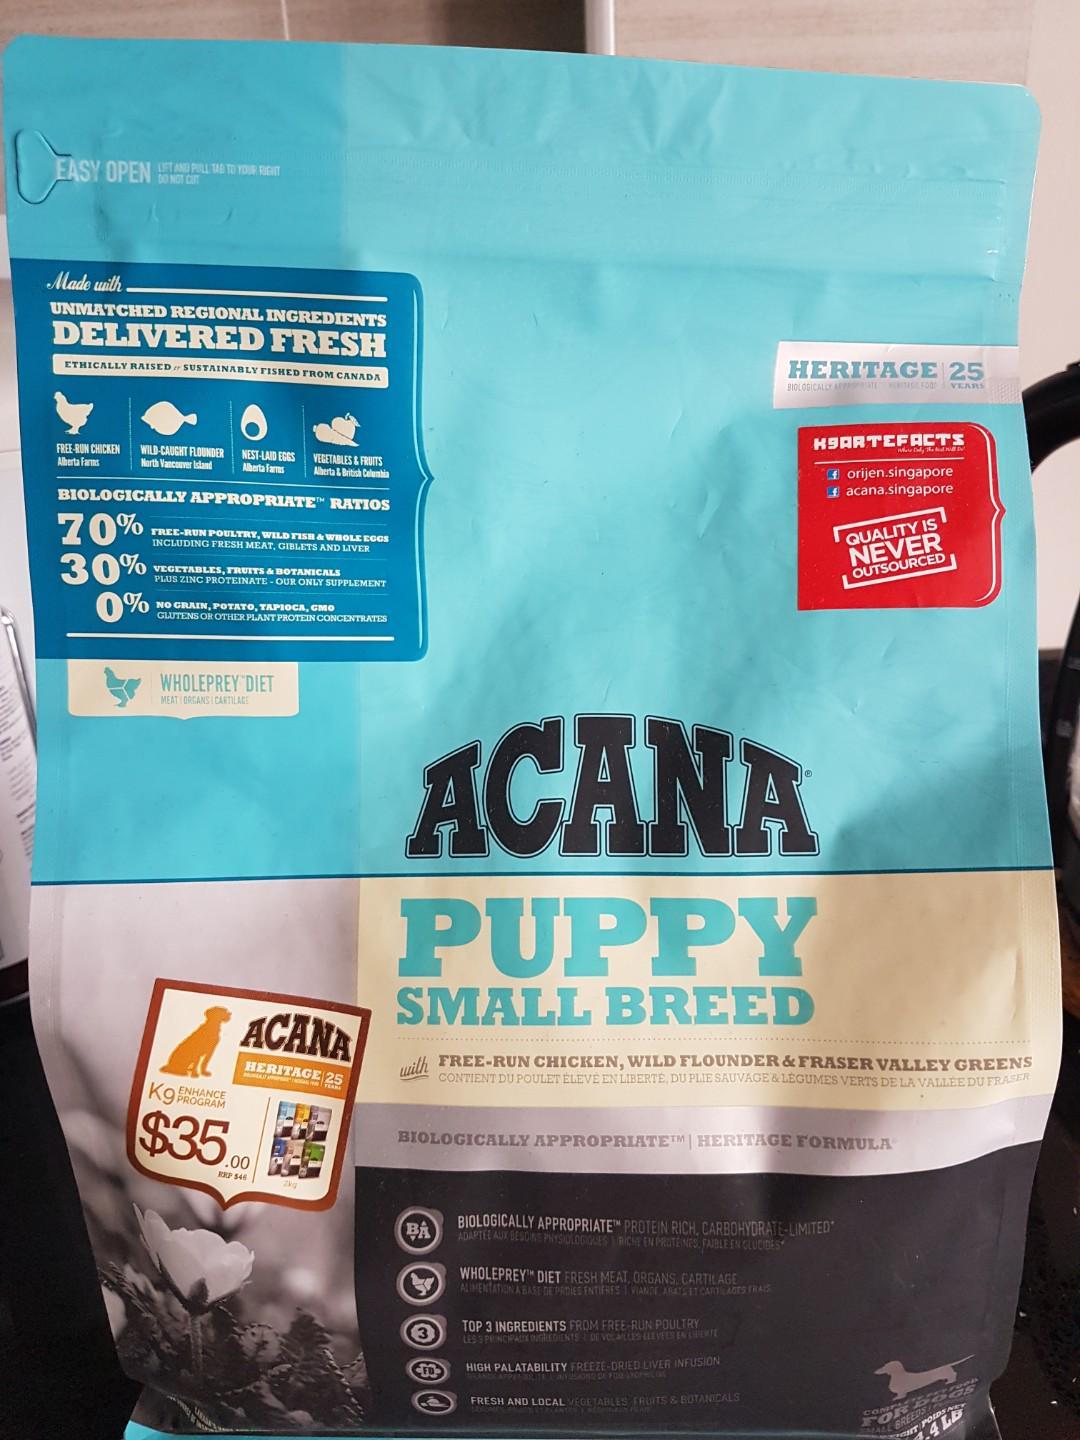 Acana Food For Puppy Small Breed Pet Supplies For Dogs Dog Food